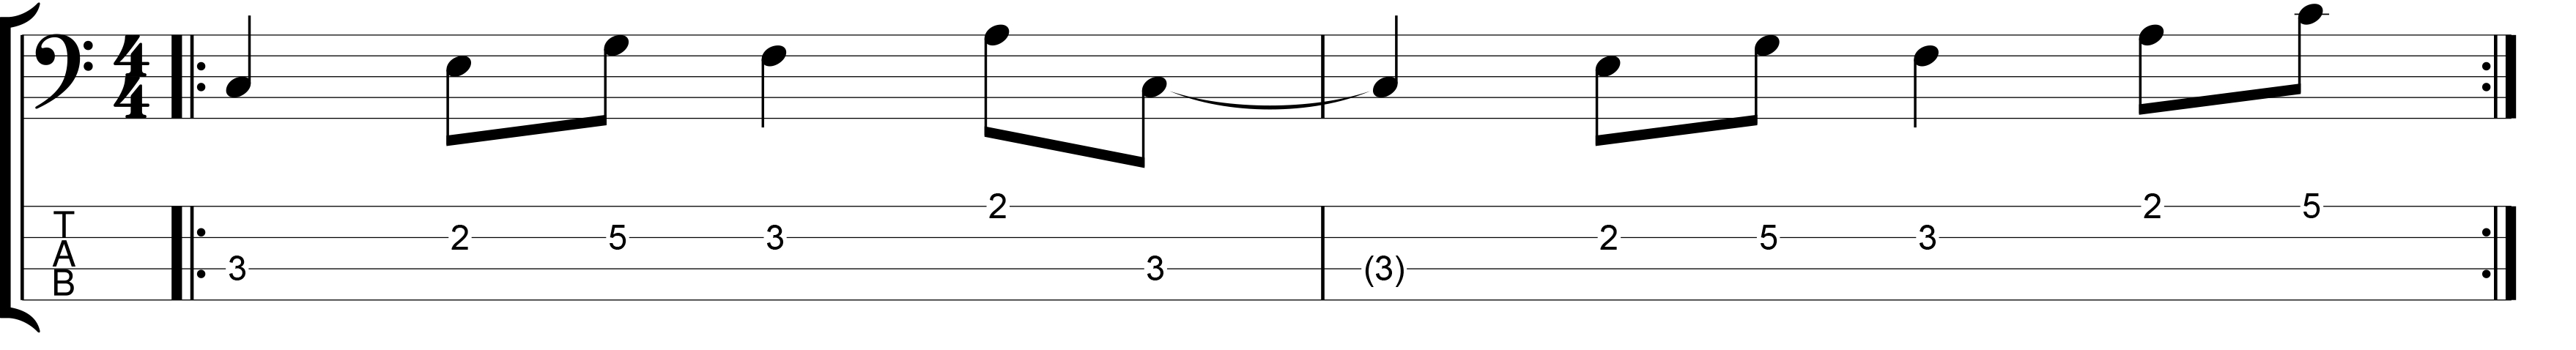 Bass line with an eighth note Feel